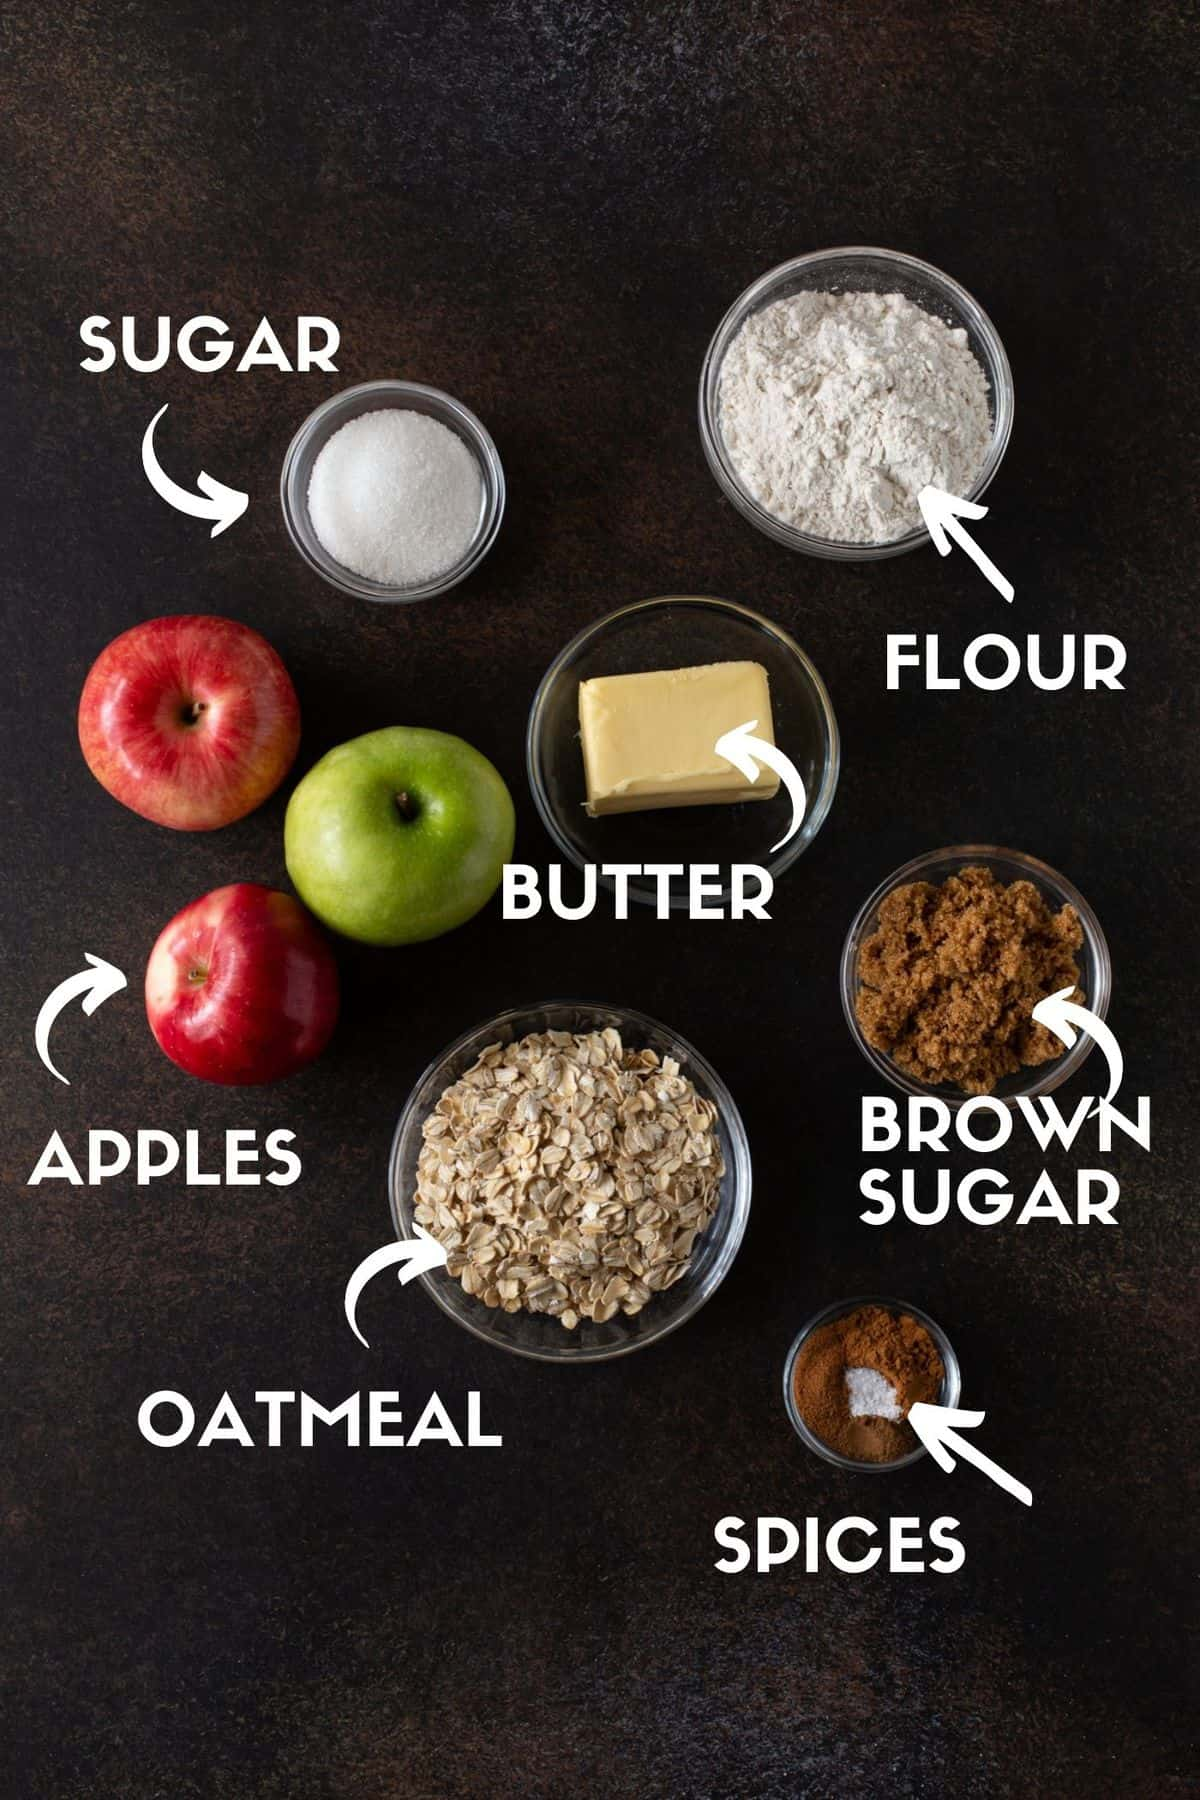 ingredients for apple bars, including flour, sugars, apples, butter, cinnamon and oats.